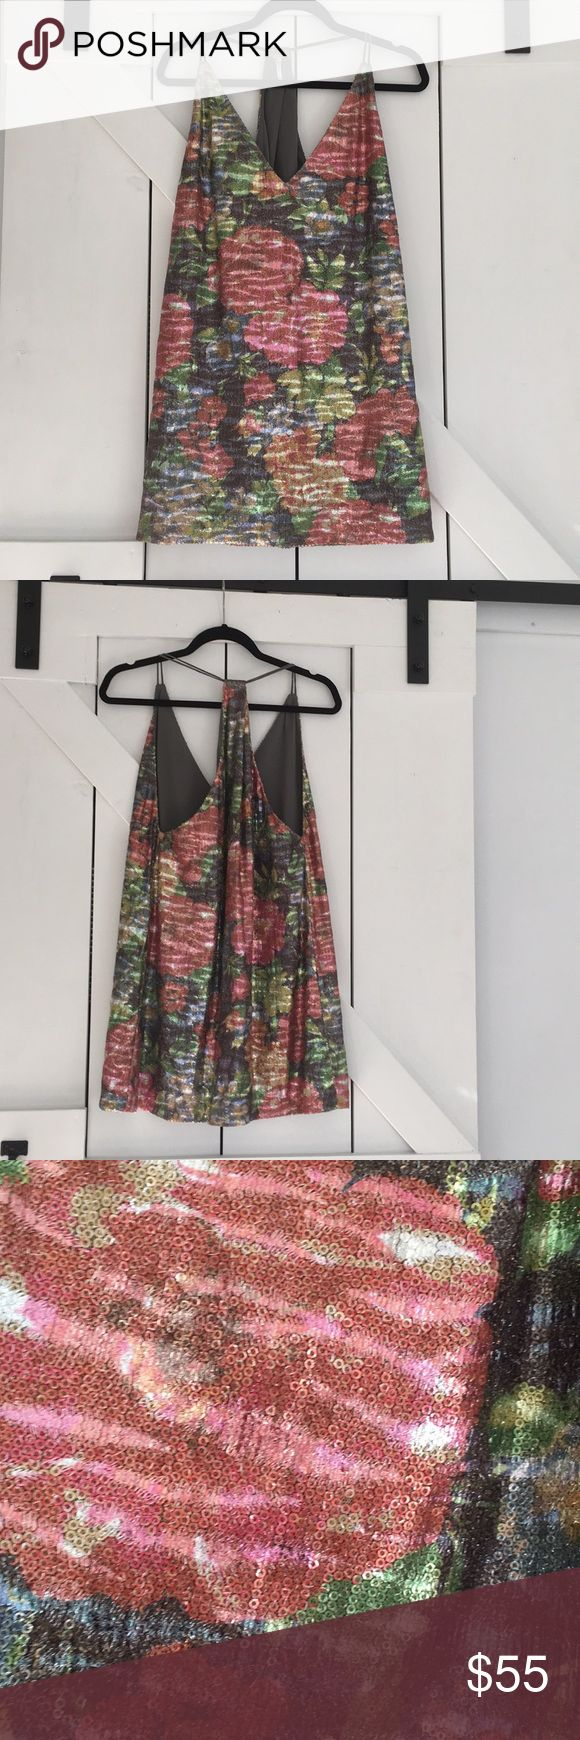 """NWOT Free People Sequin Dress Free People Tangier Floral Sequin Mini Dress. Racerback style and all over sequins. Fully lined (lining and straps are an olive green.) Flat measure 18"""" across the bust. About 31"""" from shoulder to hem. Free People Dresses Mini"""